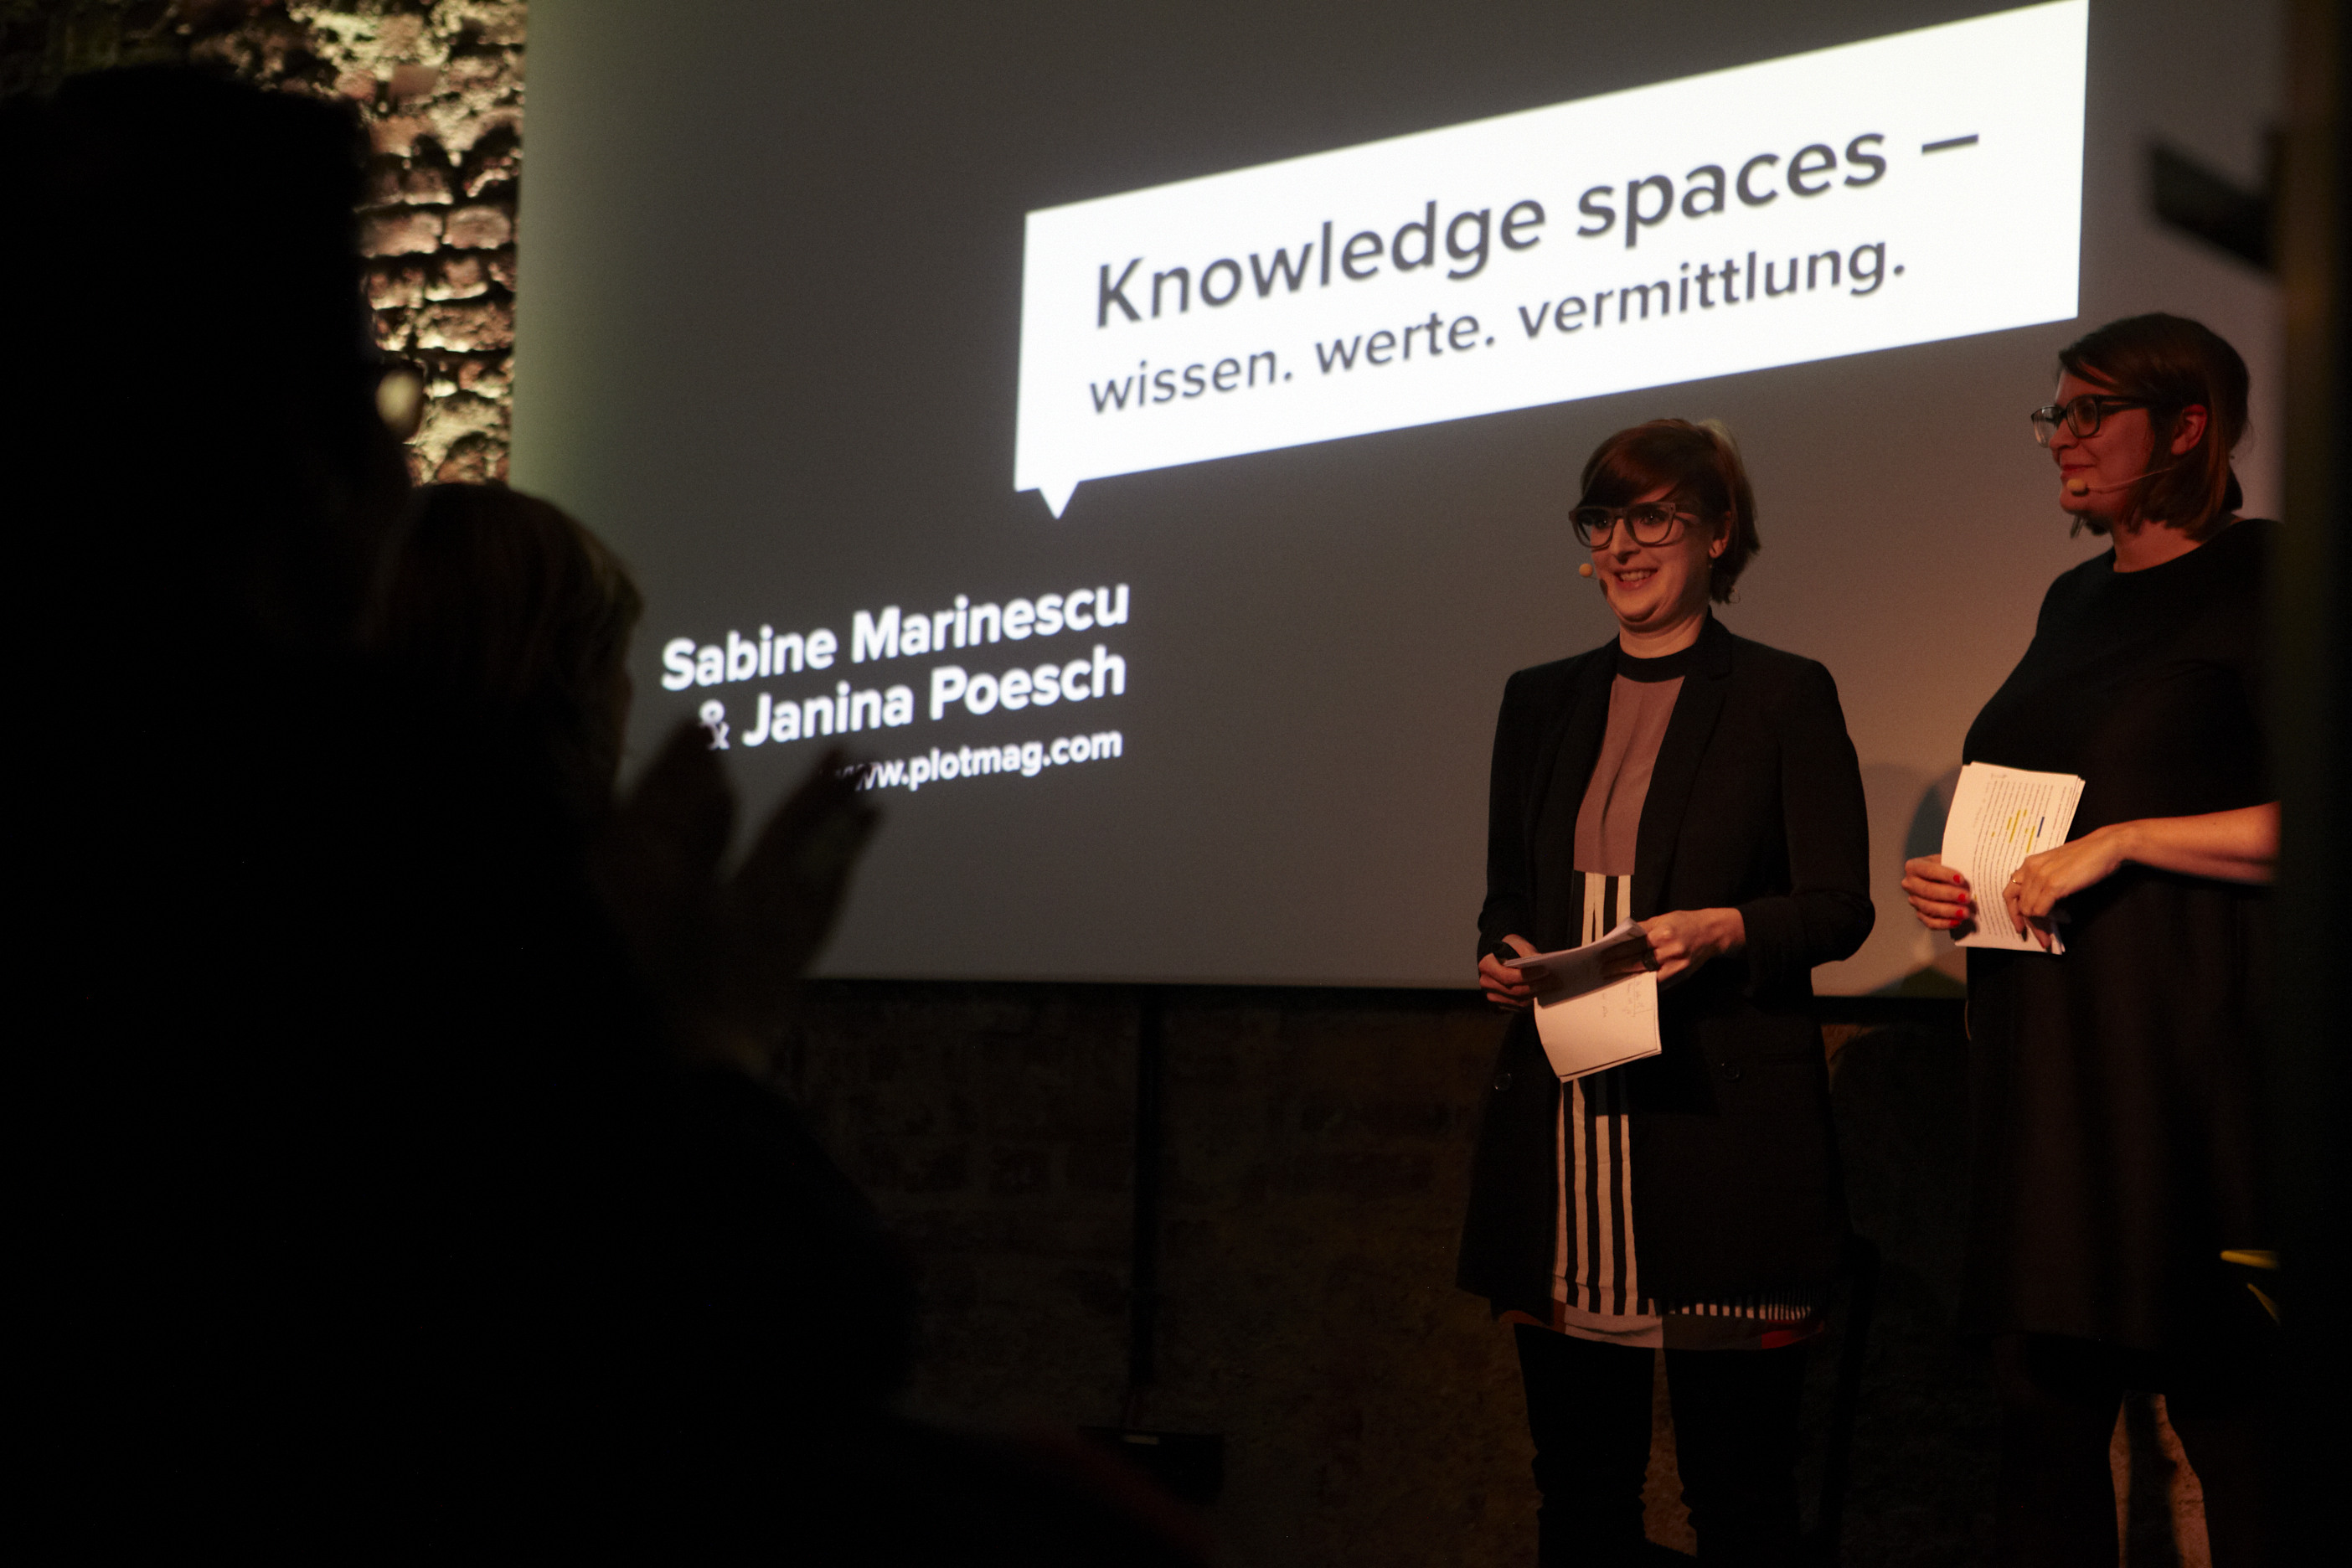 photo salon D knowledge landscapes lecture woman